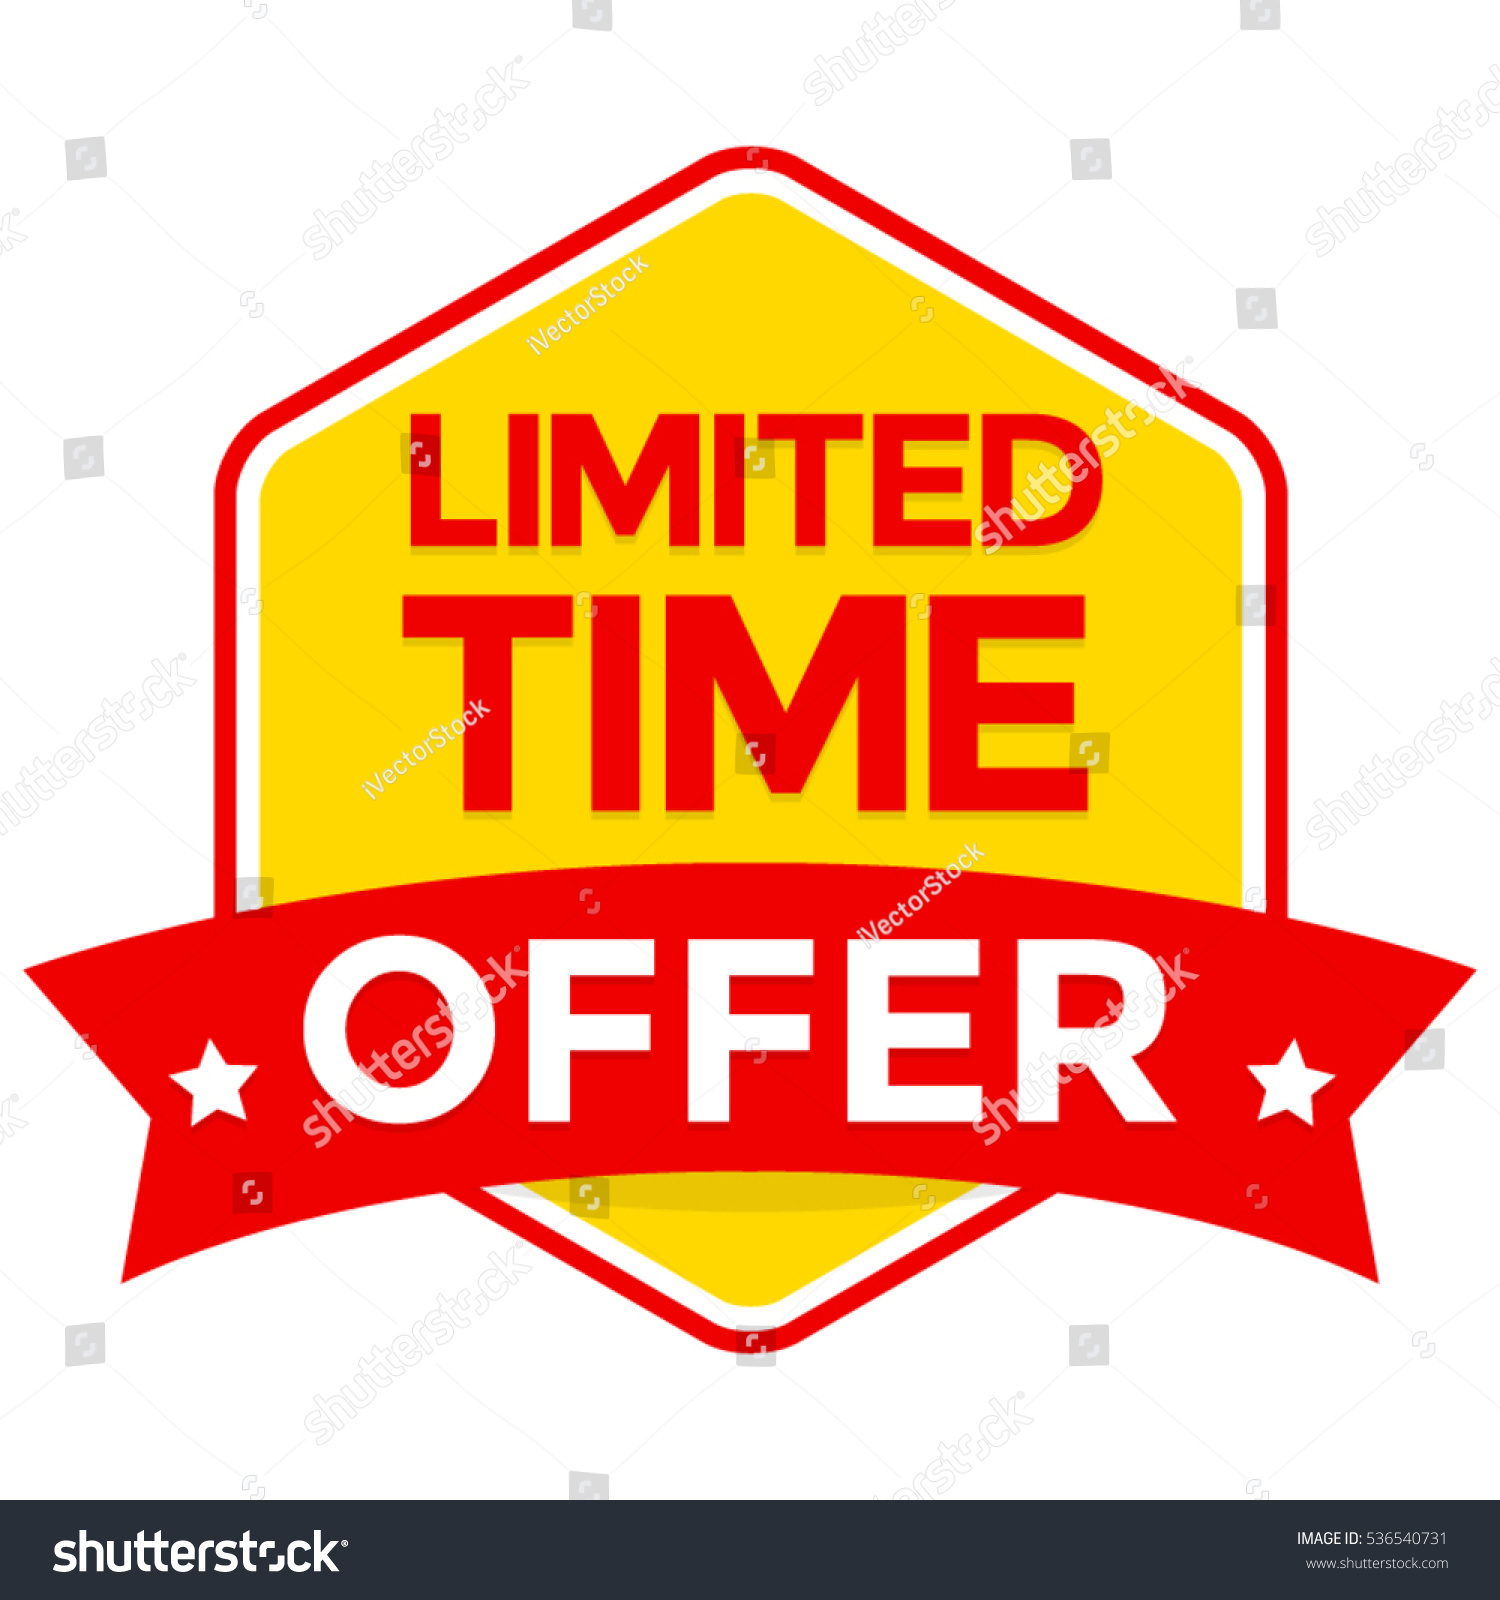 Limited Time Offer Png (104+ images in Collection) Page 1.